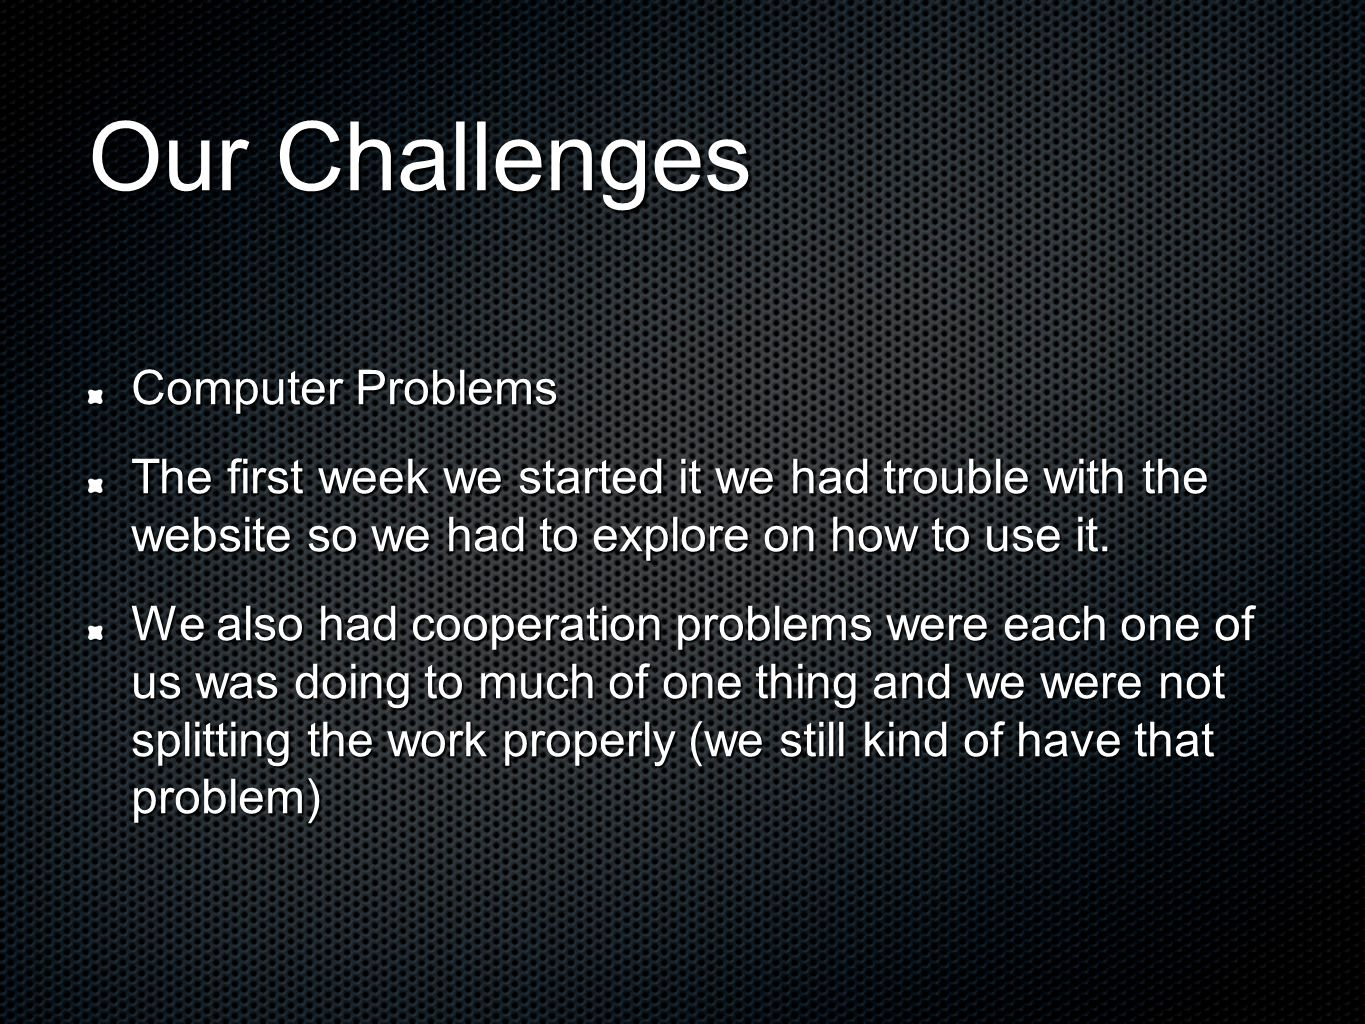 Our Challenges Computer Problems The first week we started it we had trouble with the website so we had to explore on how to use it.